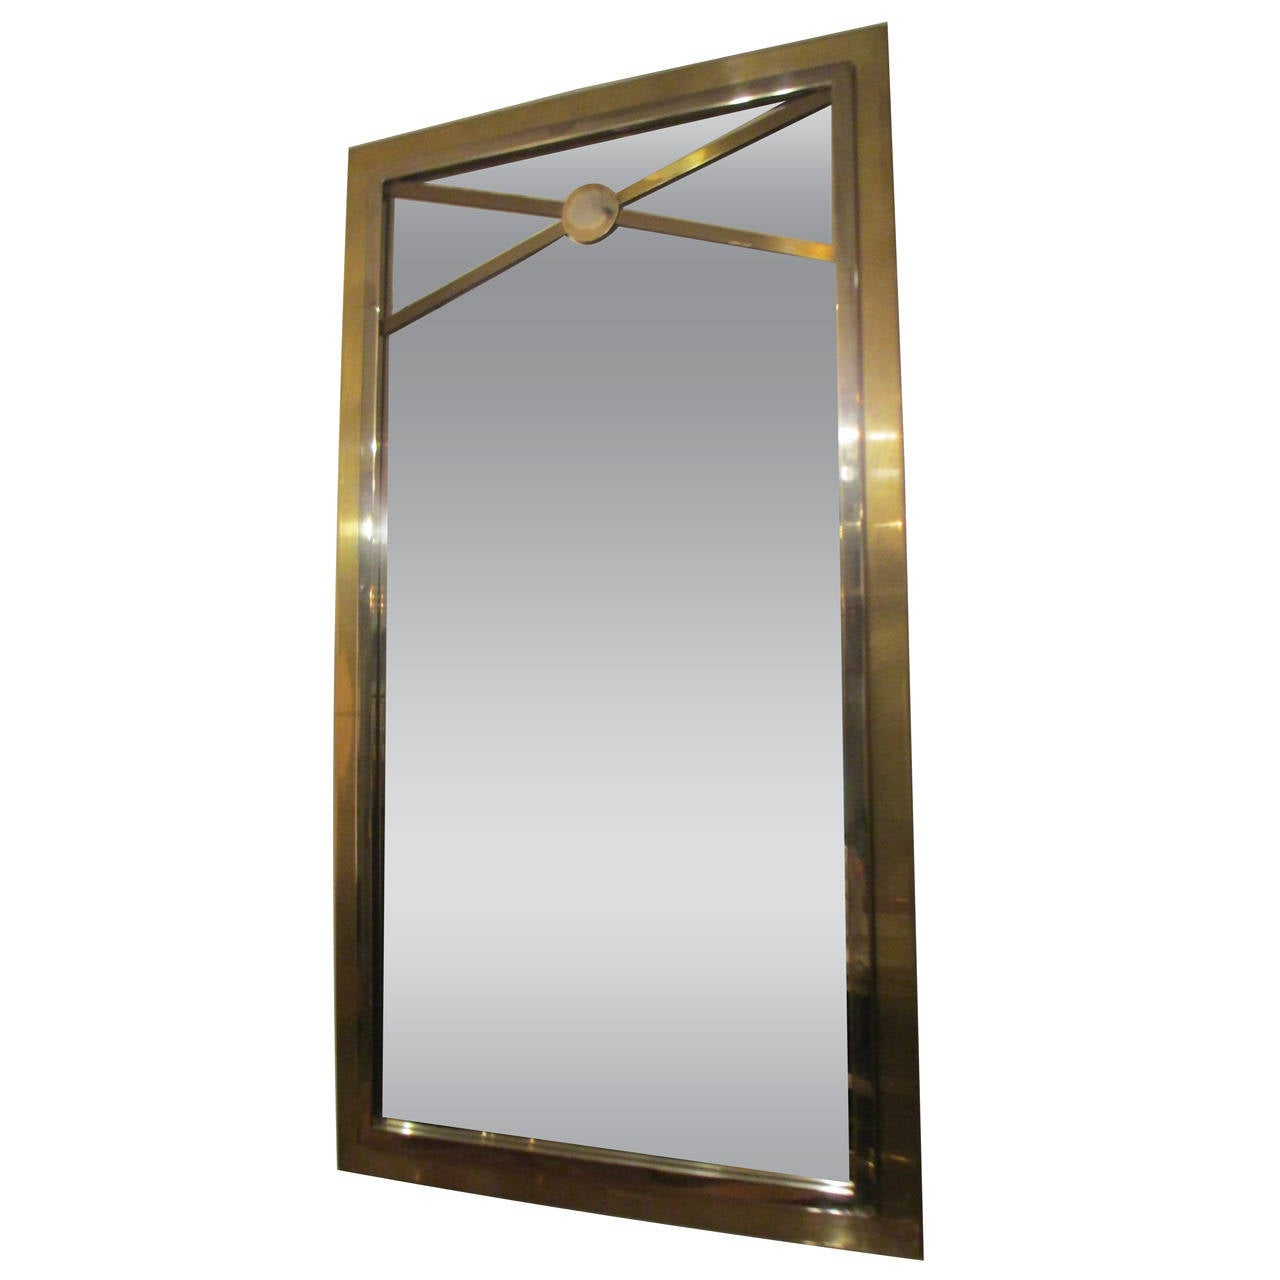 Bronze and chrome rectangular mirror for sale at 1stdibs for Bronze mirror